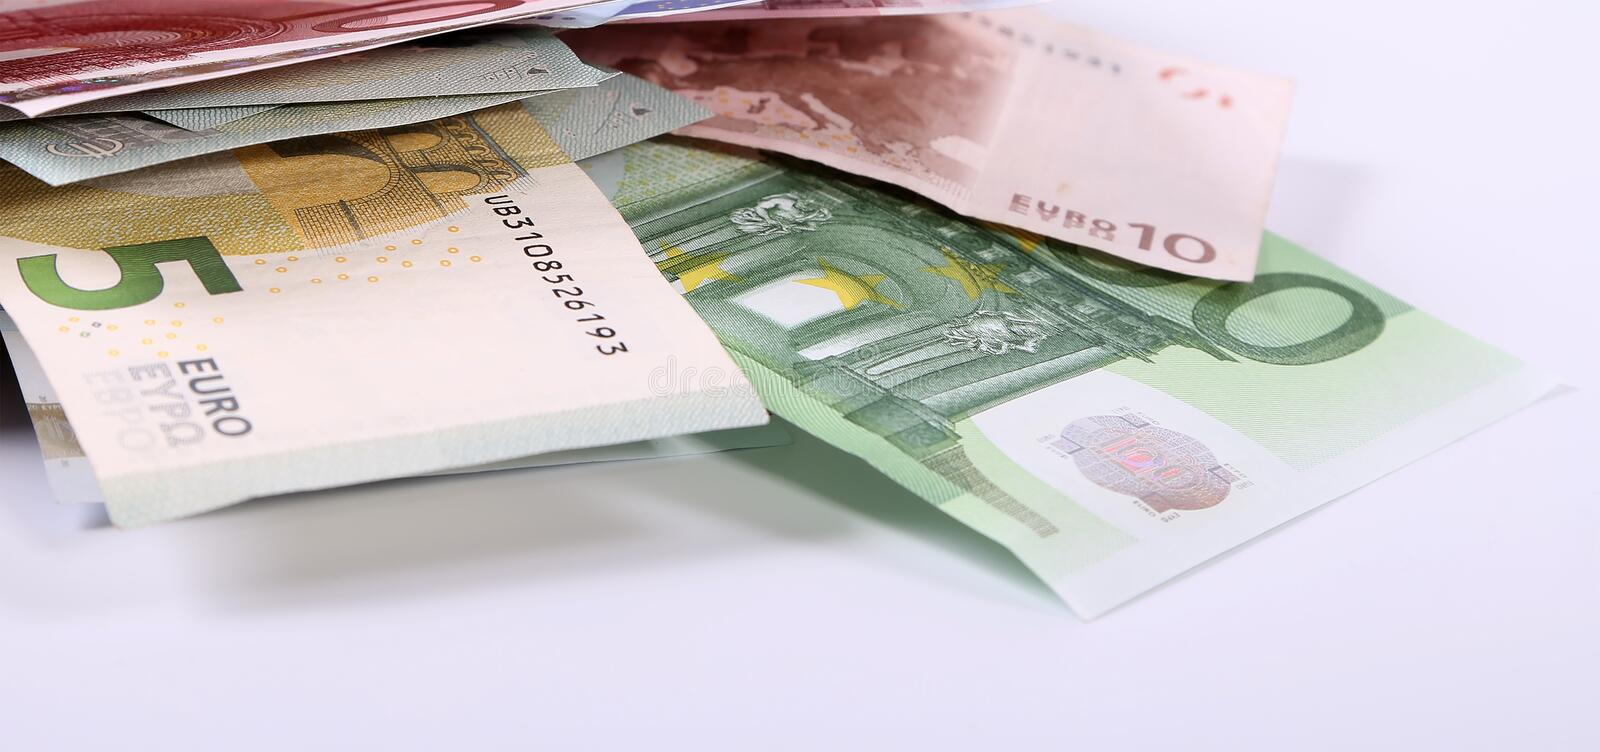 Euro banknotes close up, European currency.  royalty free stock image